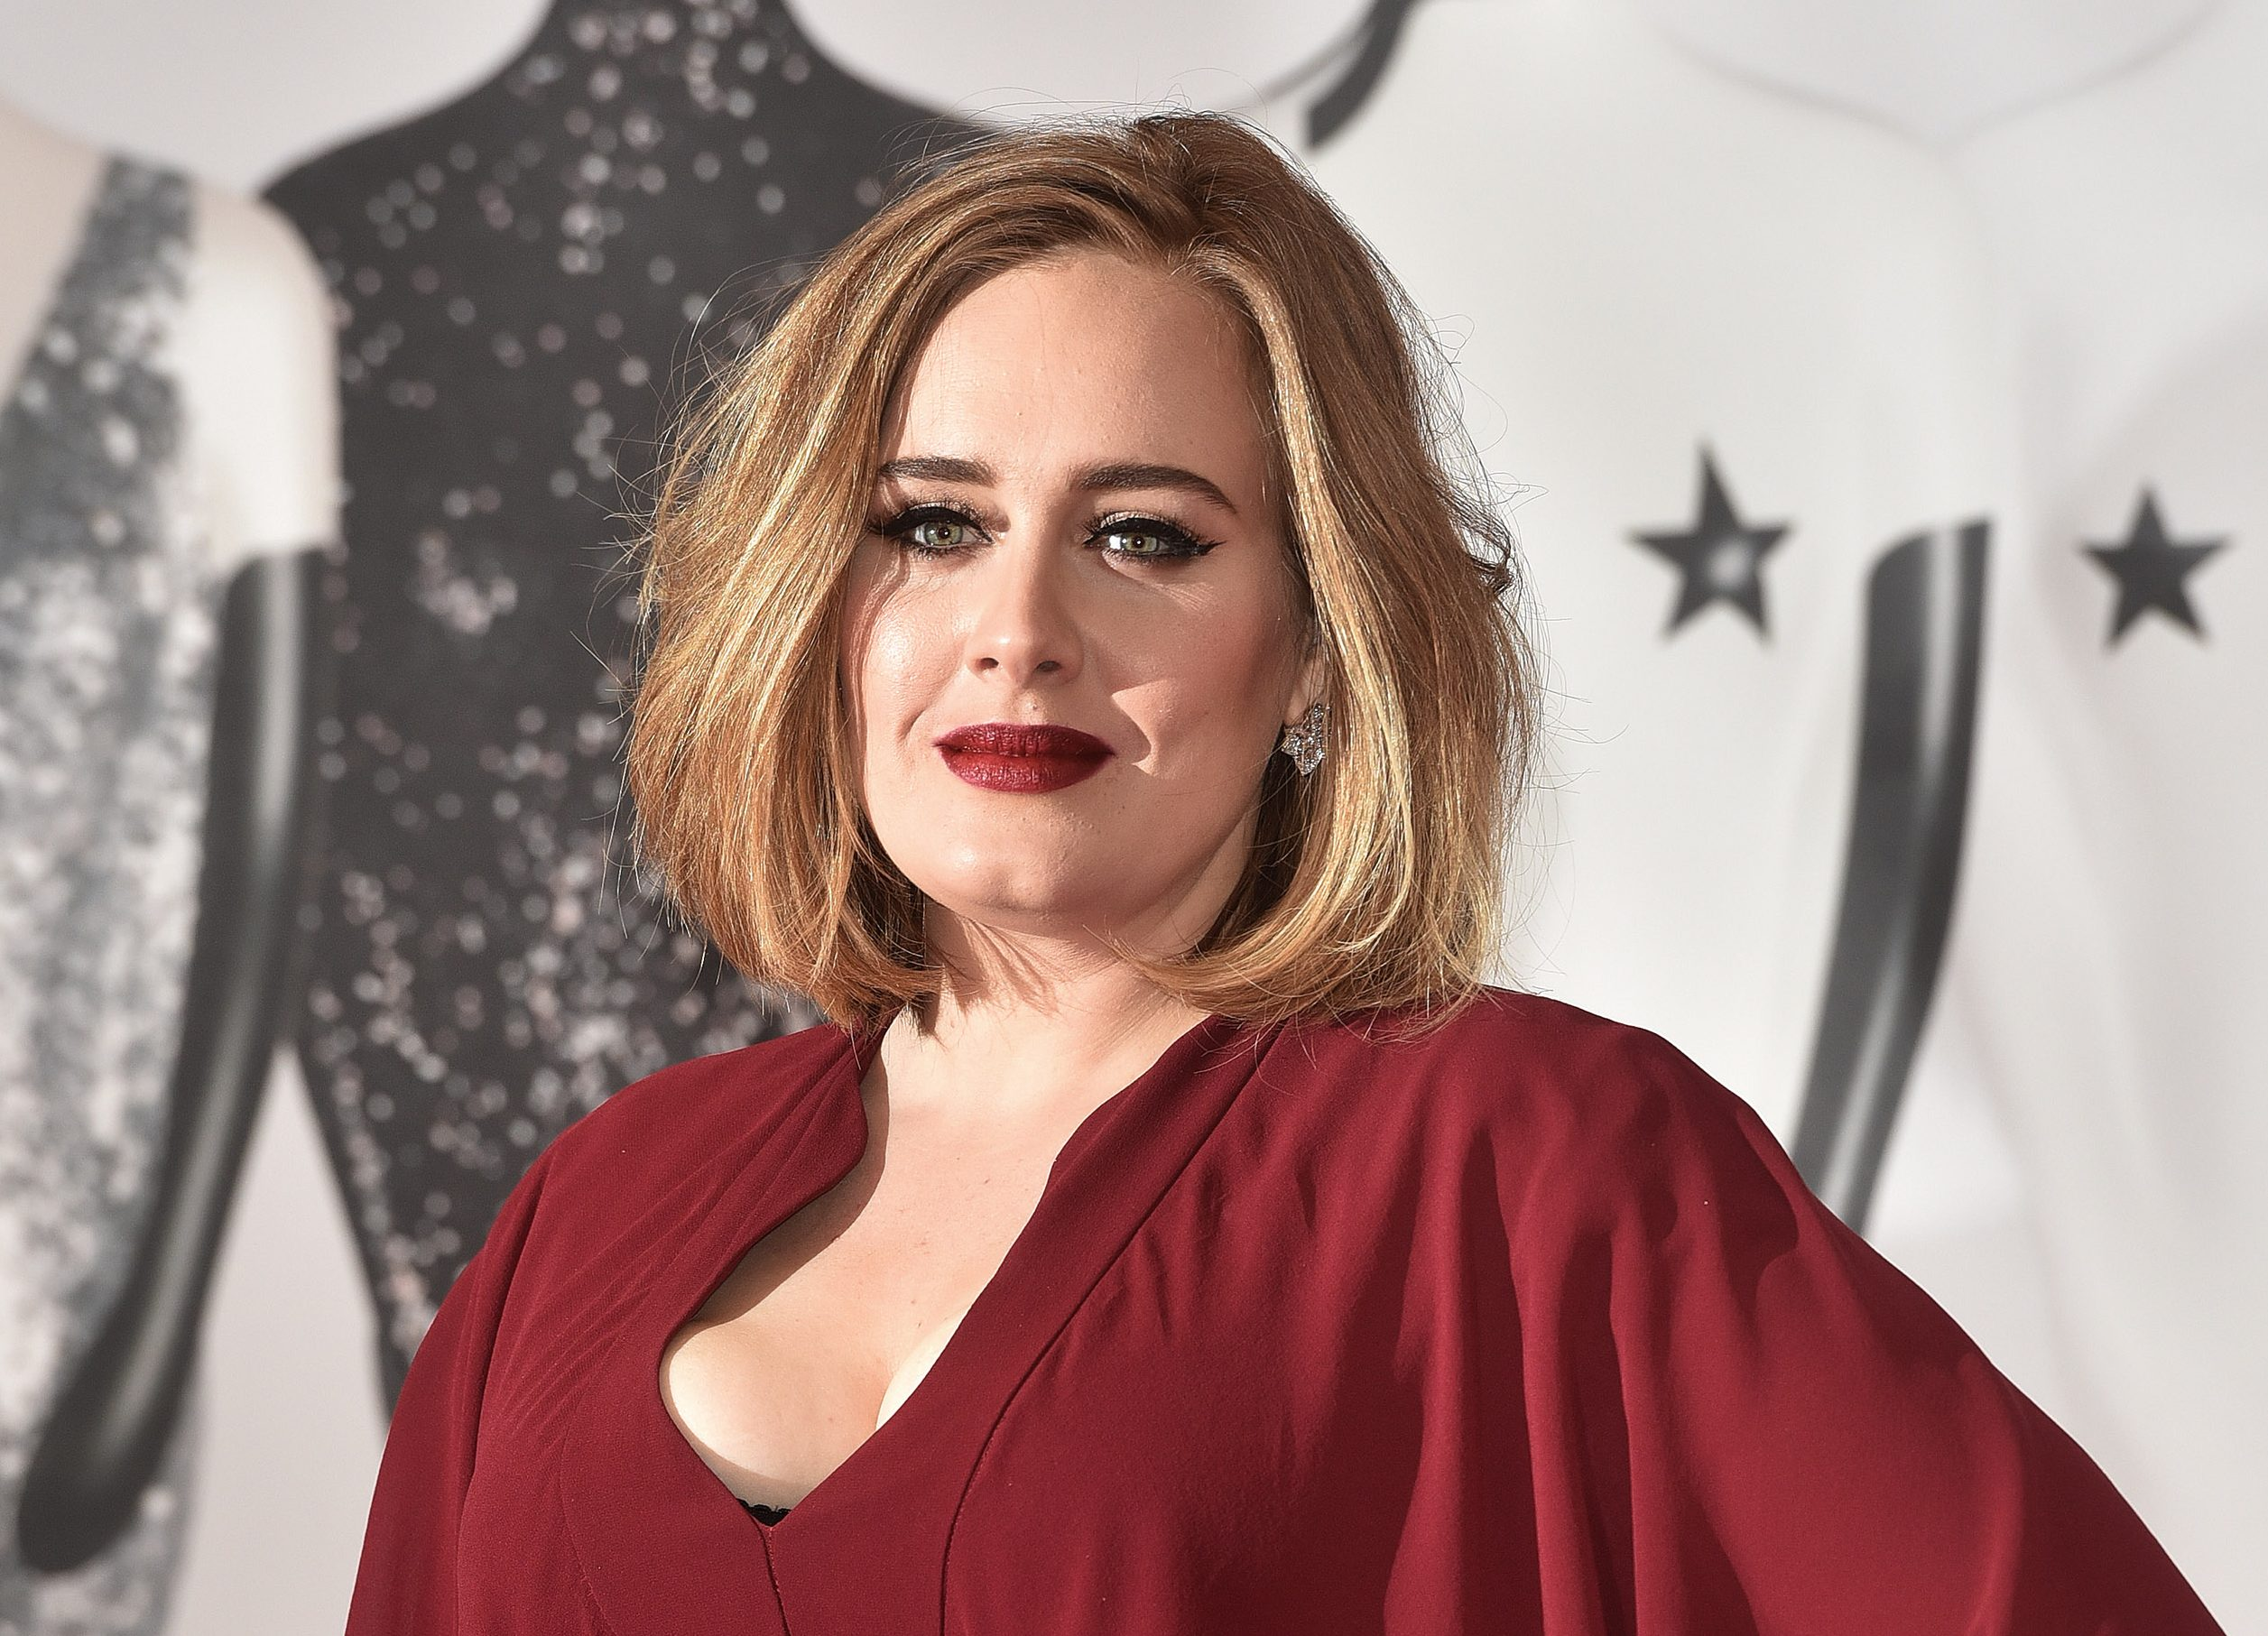 Adele invited impersonator on stage with her to sing 'Rumour Has It'